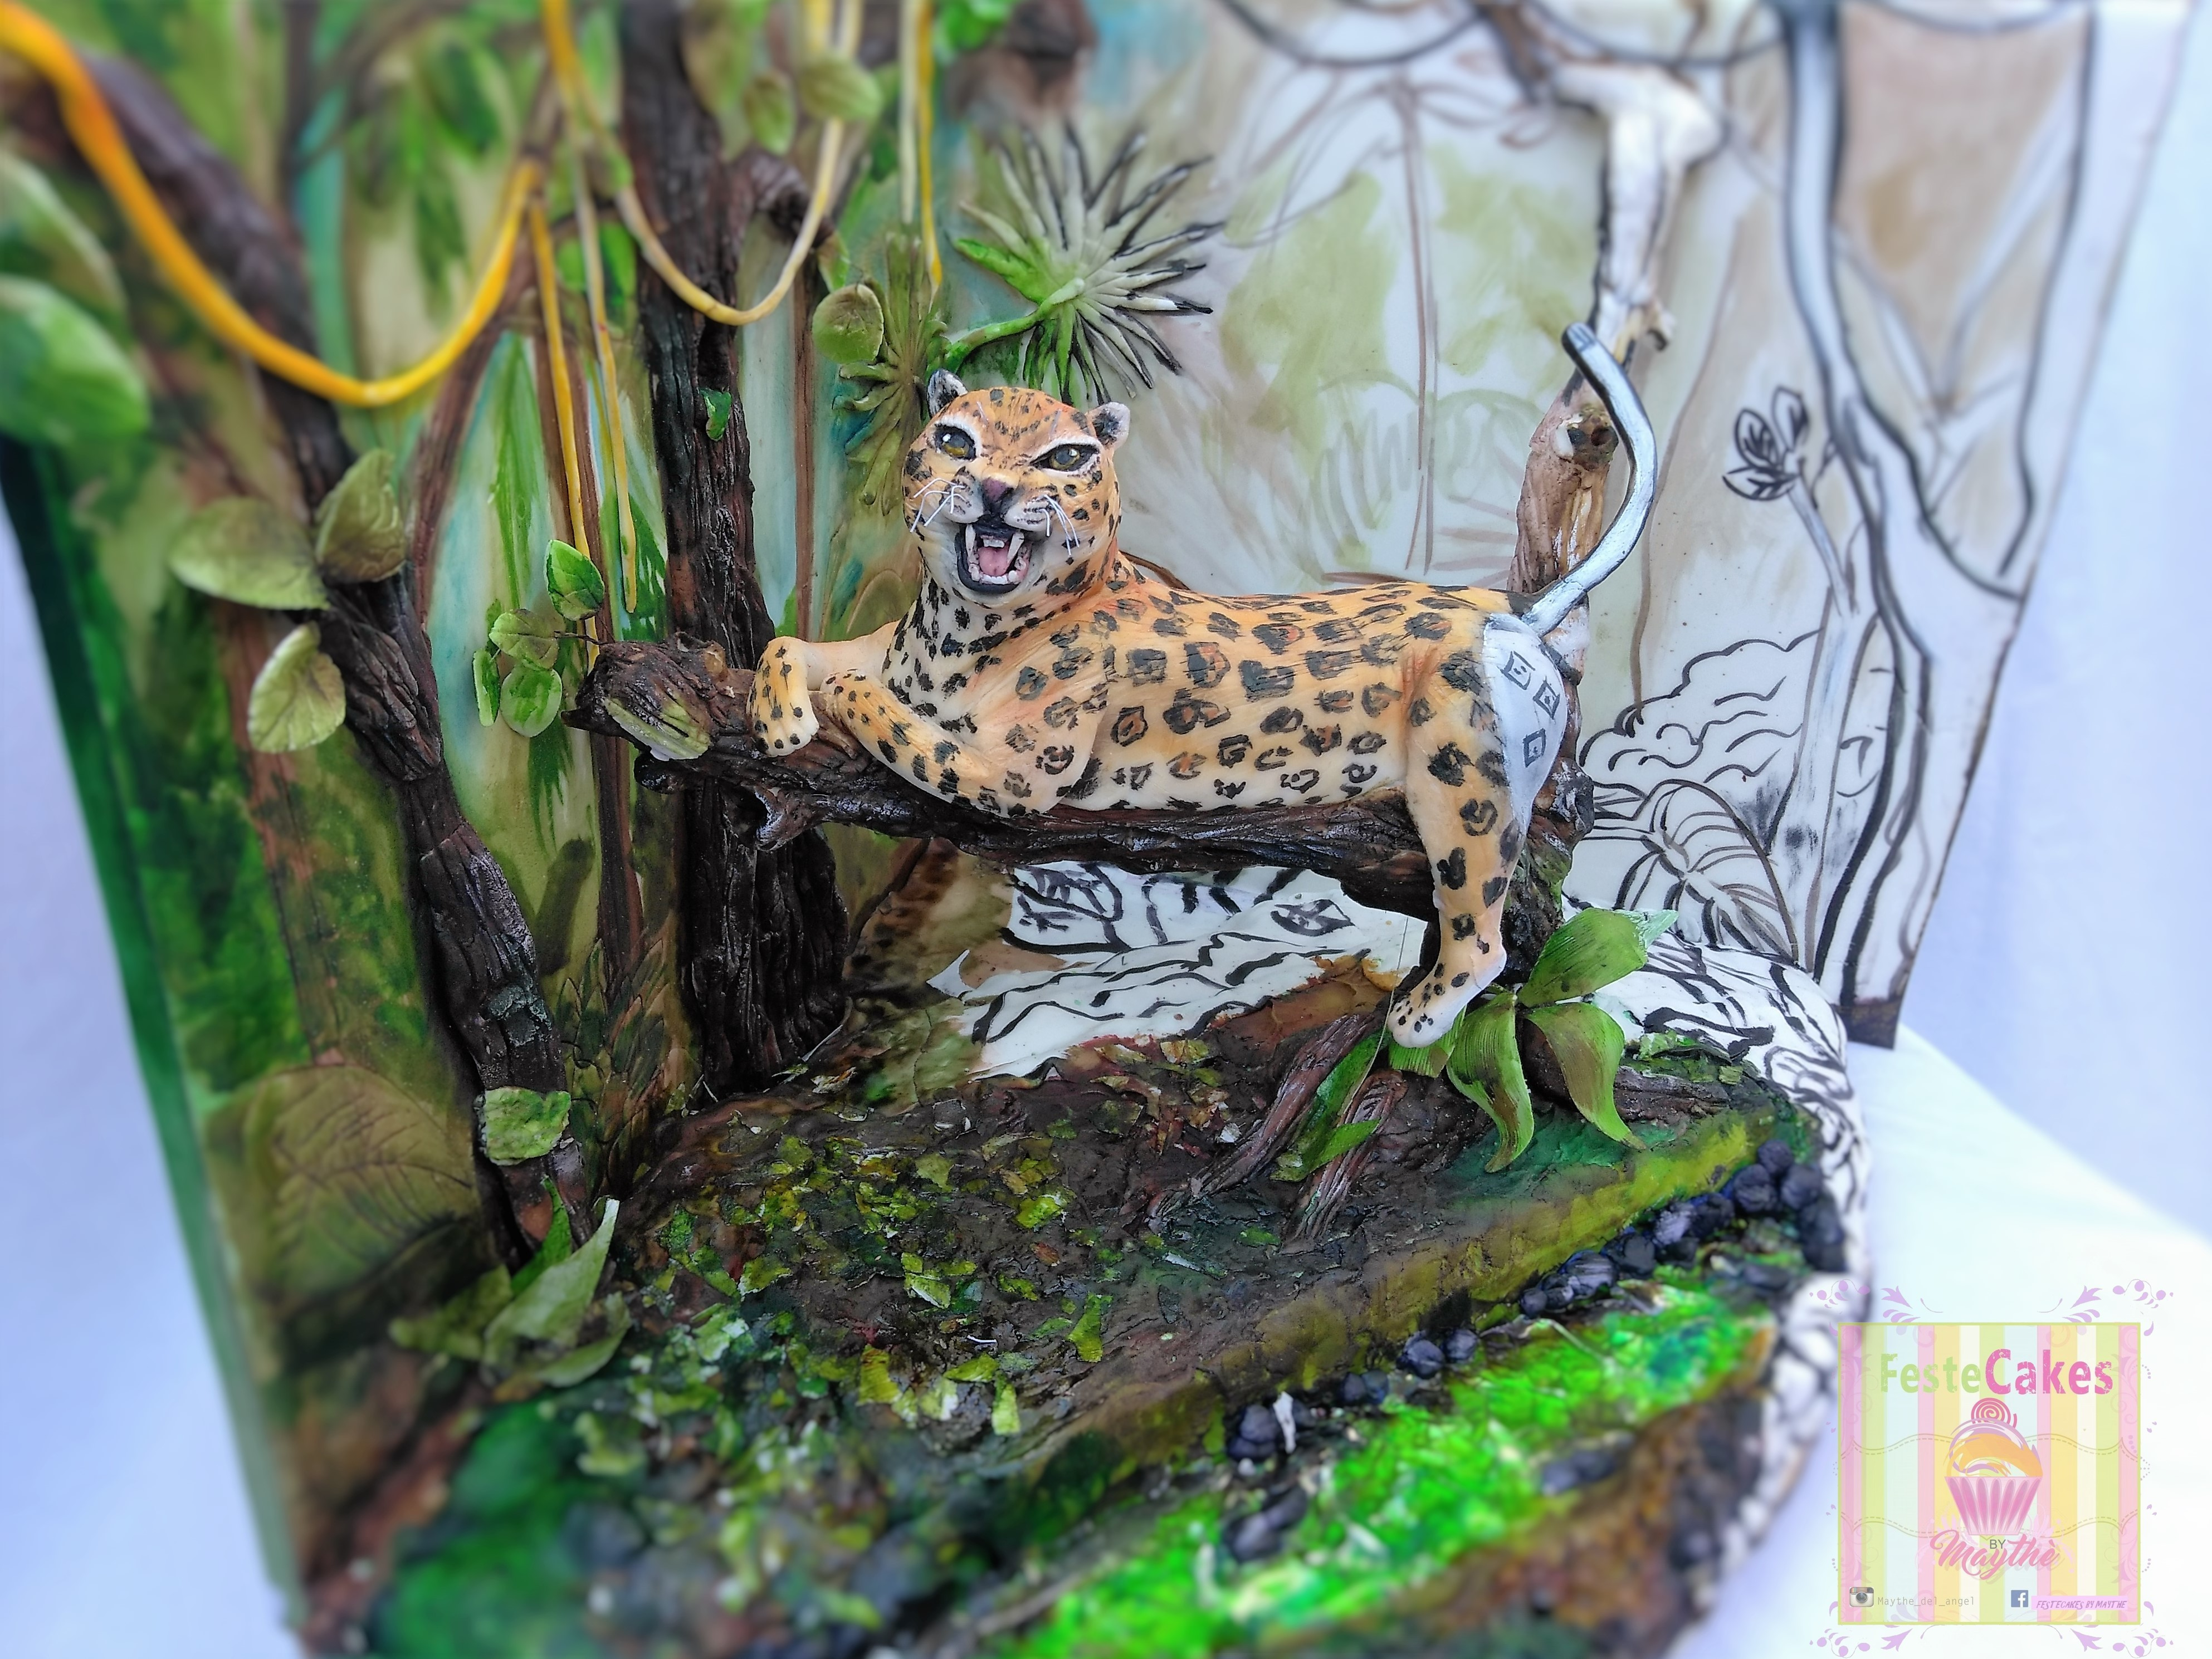 Animal-Rights-Maythe-Del-Angel-Festecakes-by-Maythe-Panthera-Onca.jpg#asset:13727